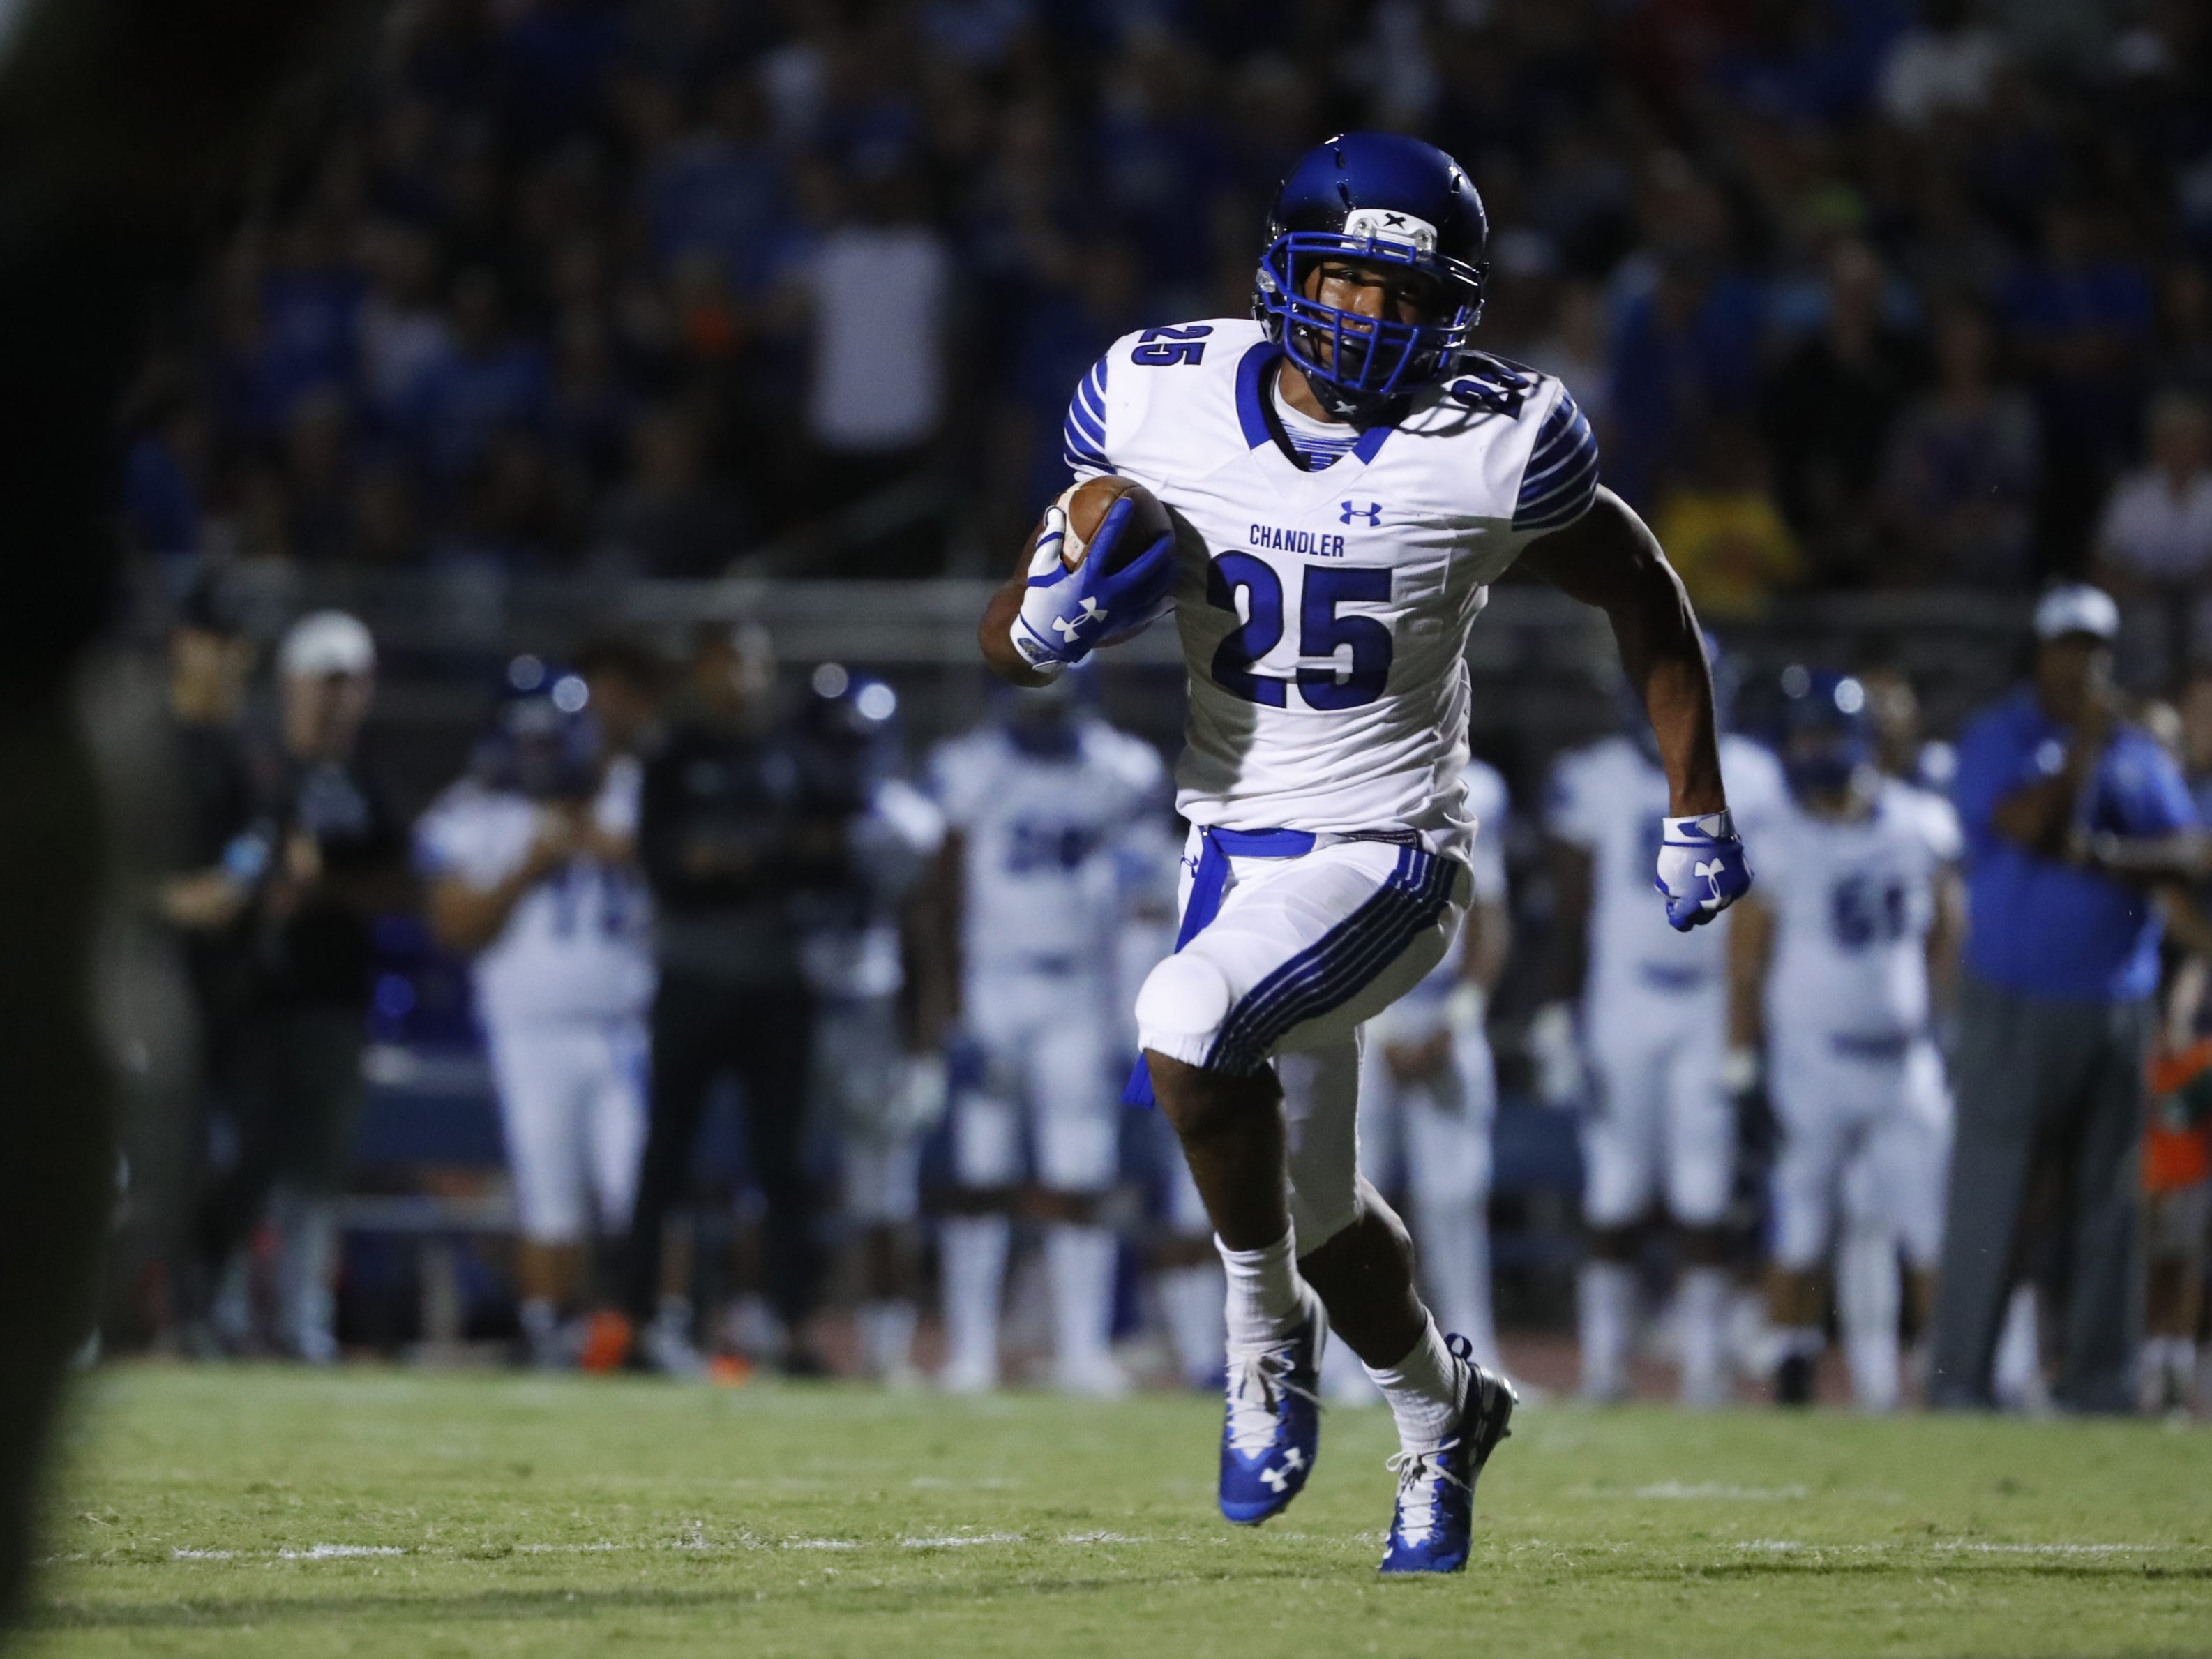 Chandler's DeCarlos Brooks (25) runs downfield against Perry at Perry High School in Gilbert, Ariz. on Sept. 28, 2018.  #azhsfbat Perry High School in Gilbert, Ariz. on Sept. 28, 2018.  #azhsfb